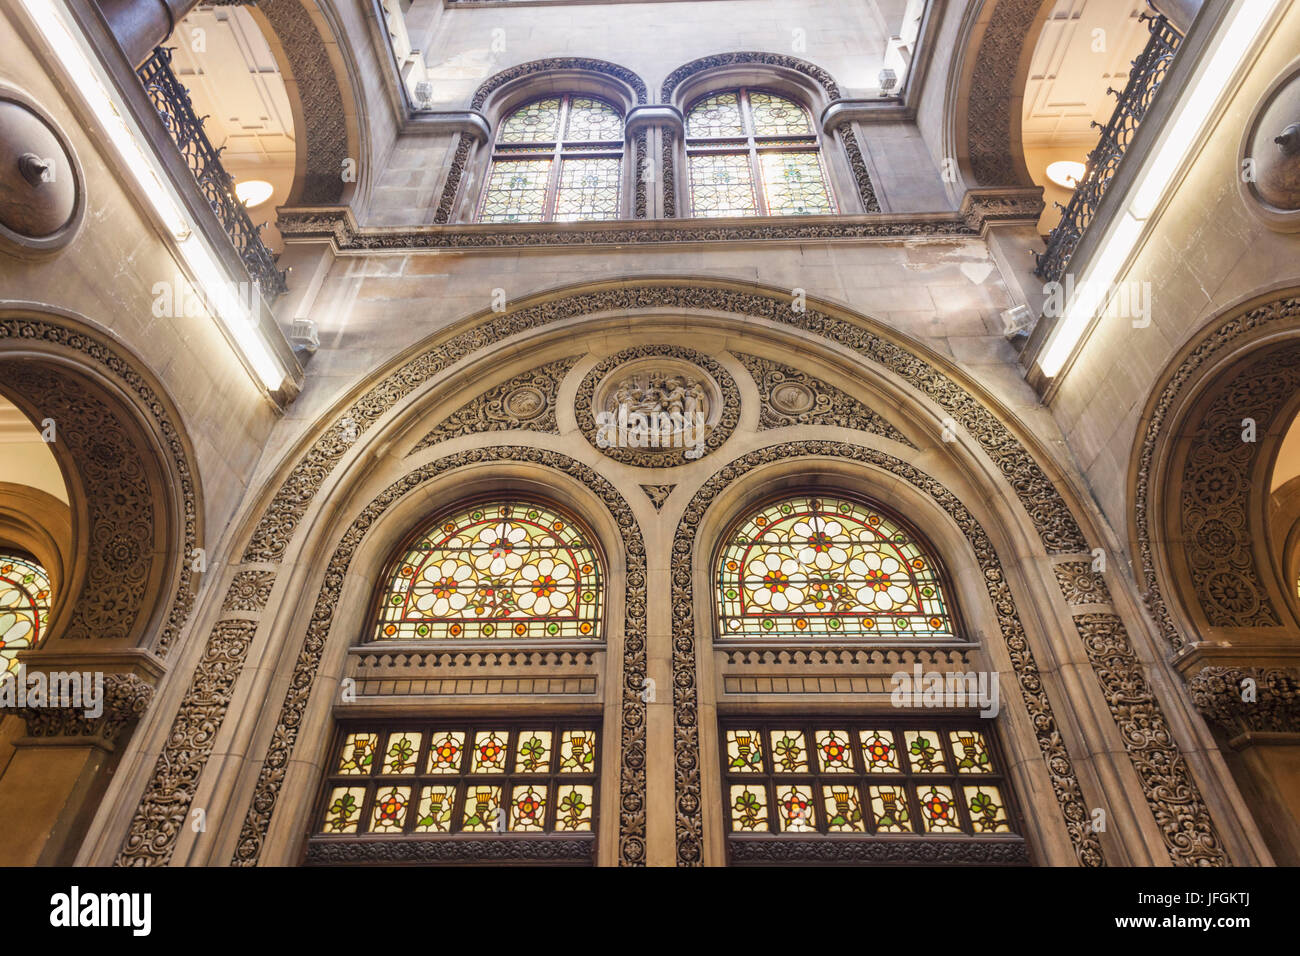 England, Yorkshire, Leeds, The Municipal Buildings, Central Library - Stock Image